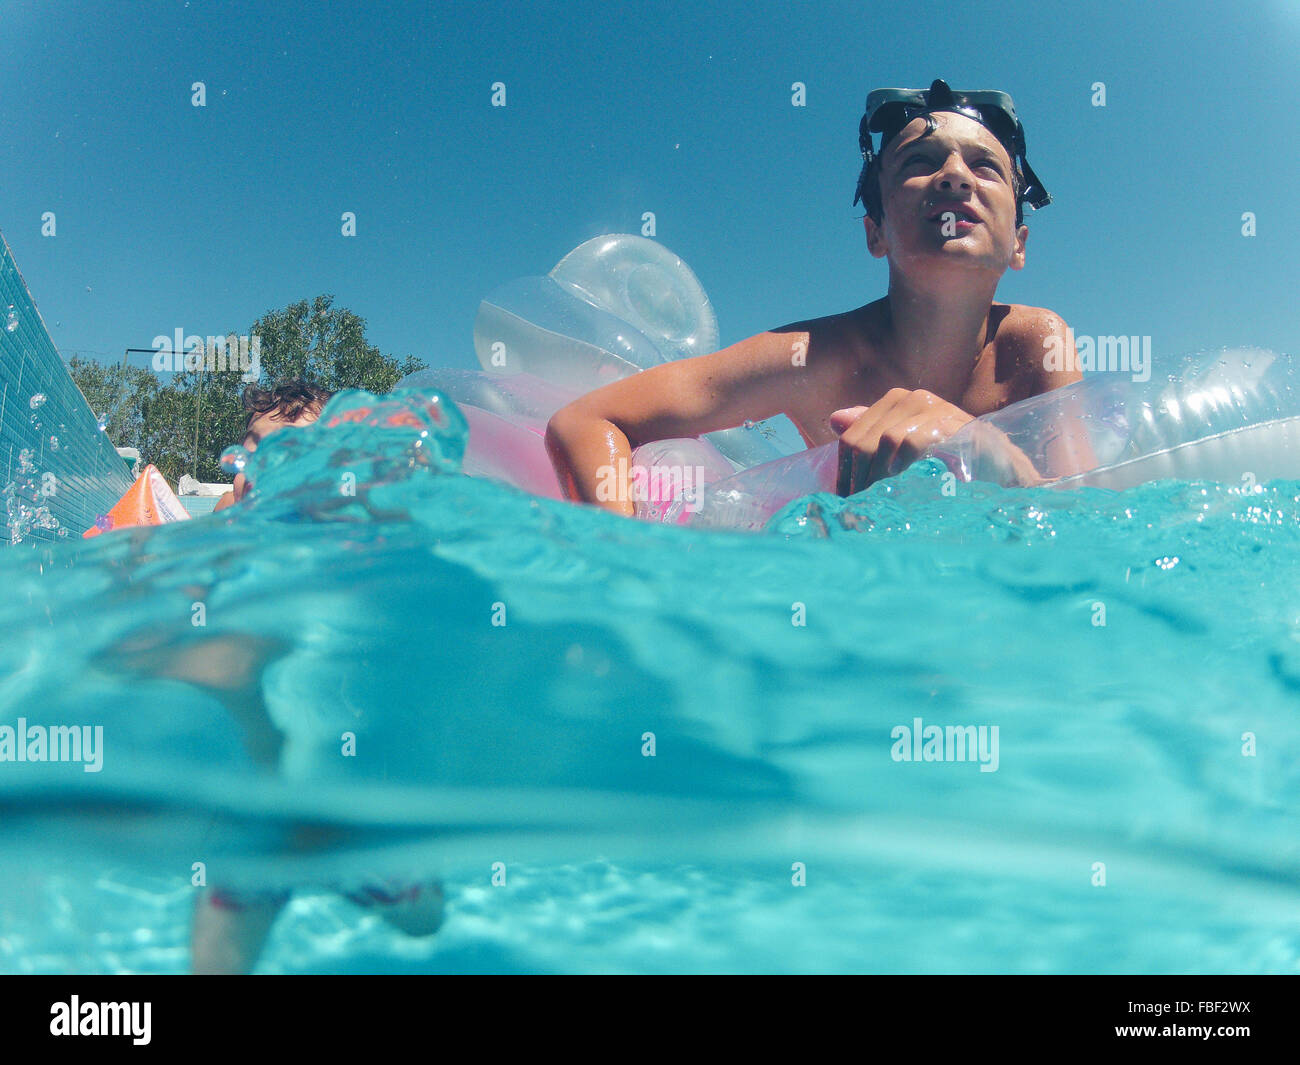 Low Angle View Of Boy Swimming In Pool Photo Stock